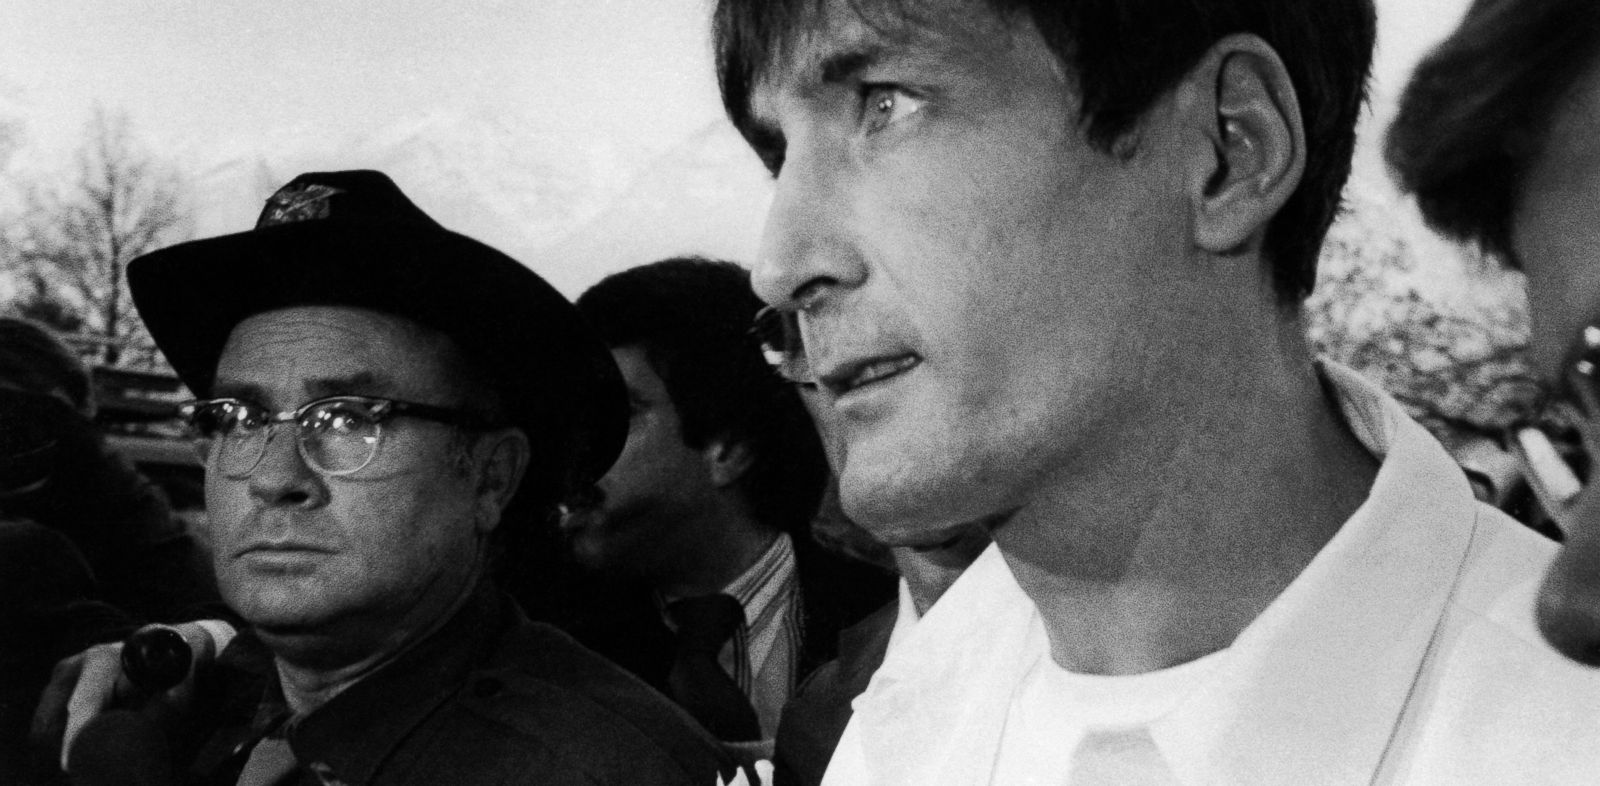 PHOTO: Gary Gilmore, wearing prison maximum security white uniform, faces barrage of newsmen and law enforcement officers on way to 4th District Court for new execution date in Provo, Utah, Dec. 3, 1976.